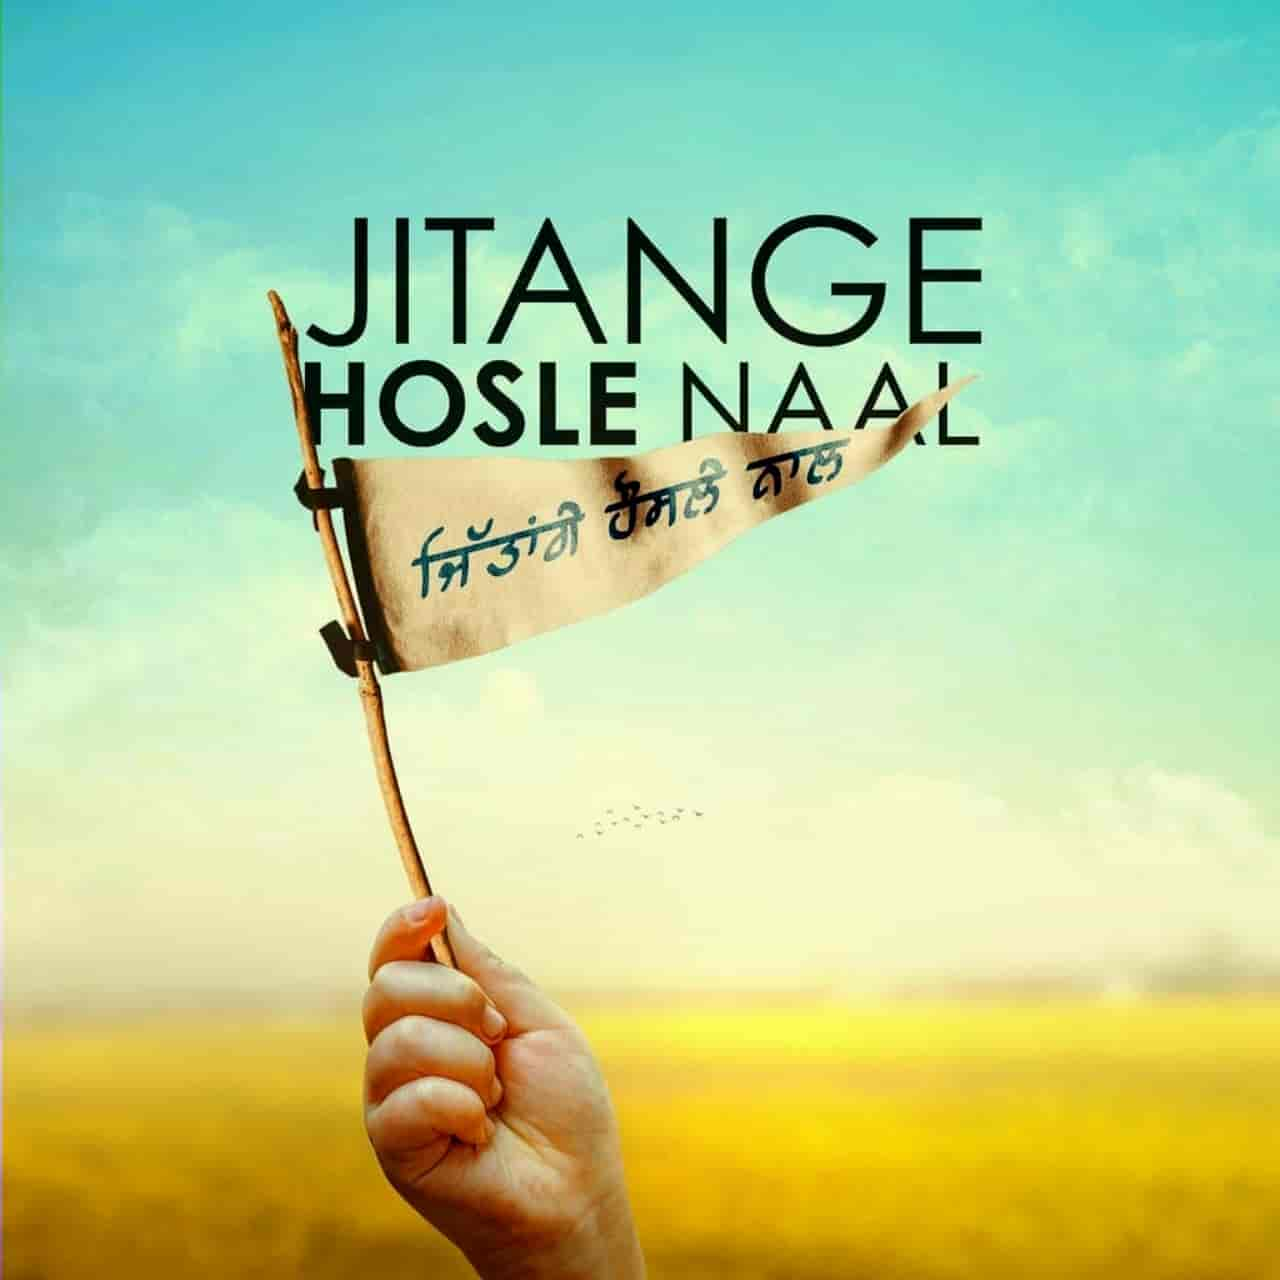 Jitange Hosle Naal Lyrics :- Punjabi actress Neeru Bajwa entertainment presented a punjabi track 'Jitange Hosle Naal' which is full of positivity during this global pandemic situation sung in the voices of Afsana Khan and Rza Heer. Music of this song has given by Mp Athwal while this positive song Jitange Hosle Naal lyrics has penned by Veet Baljit. Some of famous punjabi actress are featuring in this song like Neeru Bajwa, Sargun Mehta and so on. This song is presented by Speed Records label.